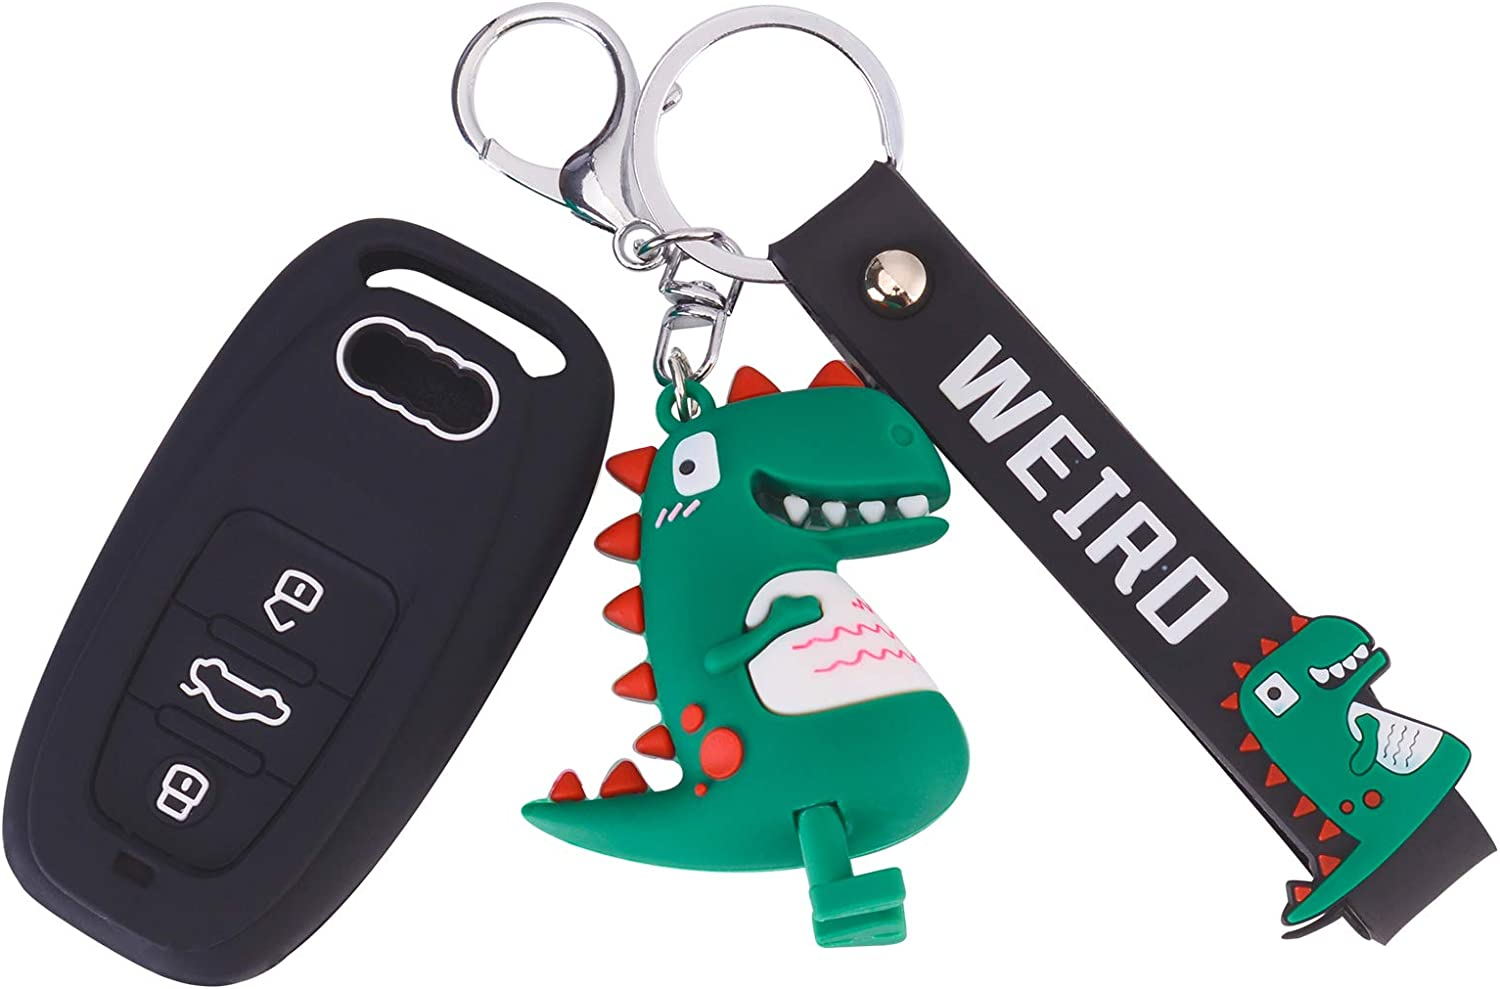 yasfandr Silicone Remote Key Fob Covers Smooth Soft Rubber Case Fits for Audi 2019 2020 A6 A6L A7 E-Tron A8 Q8 Keyless Smart Key Fob with Cute Cartoon Keychains Black